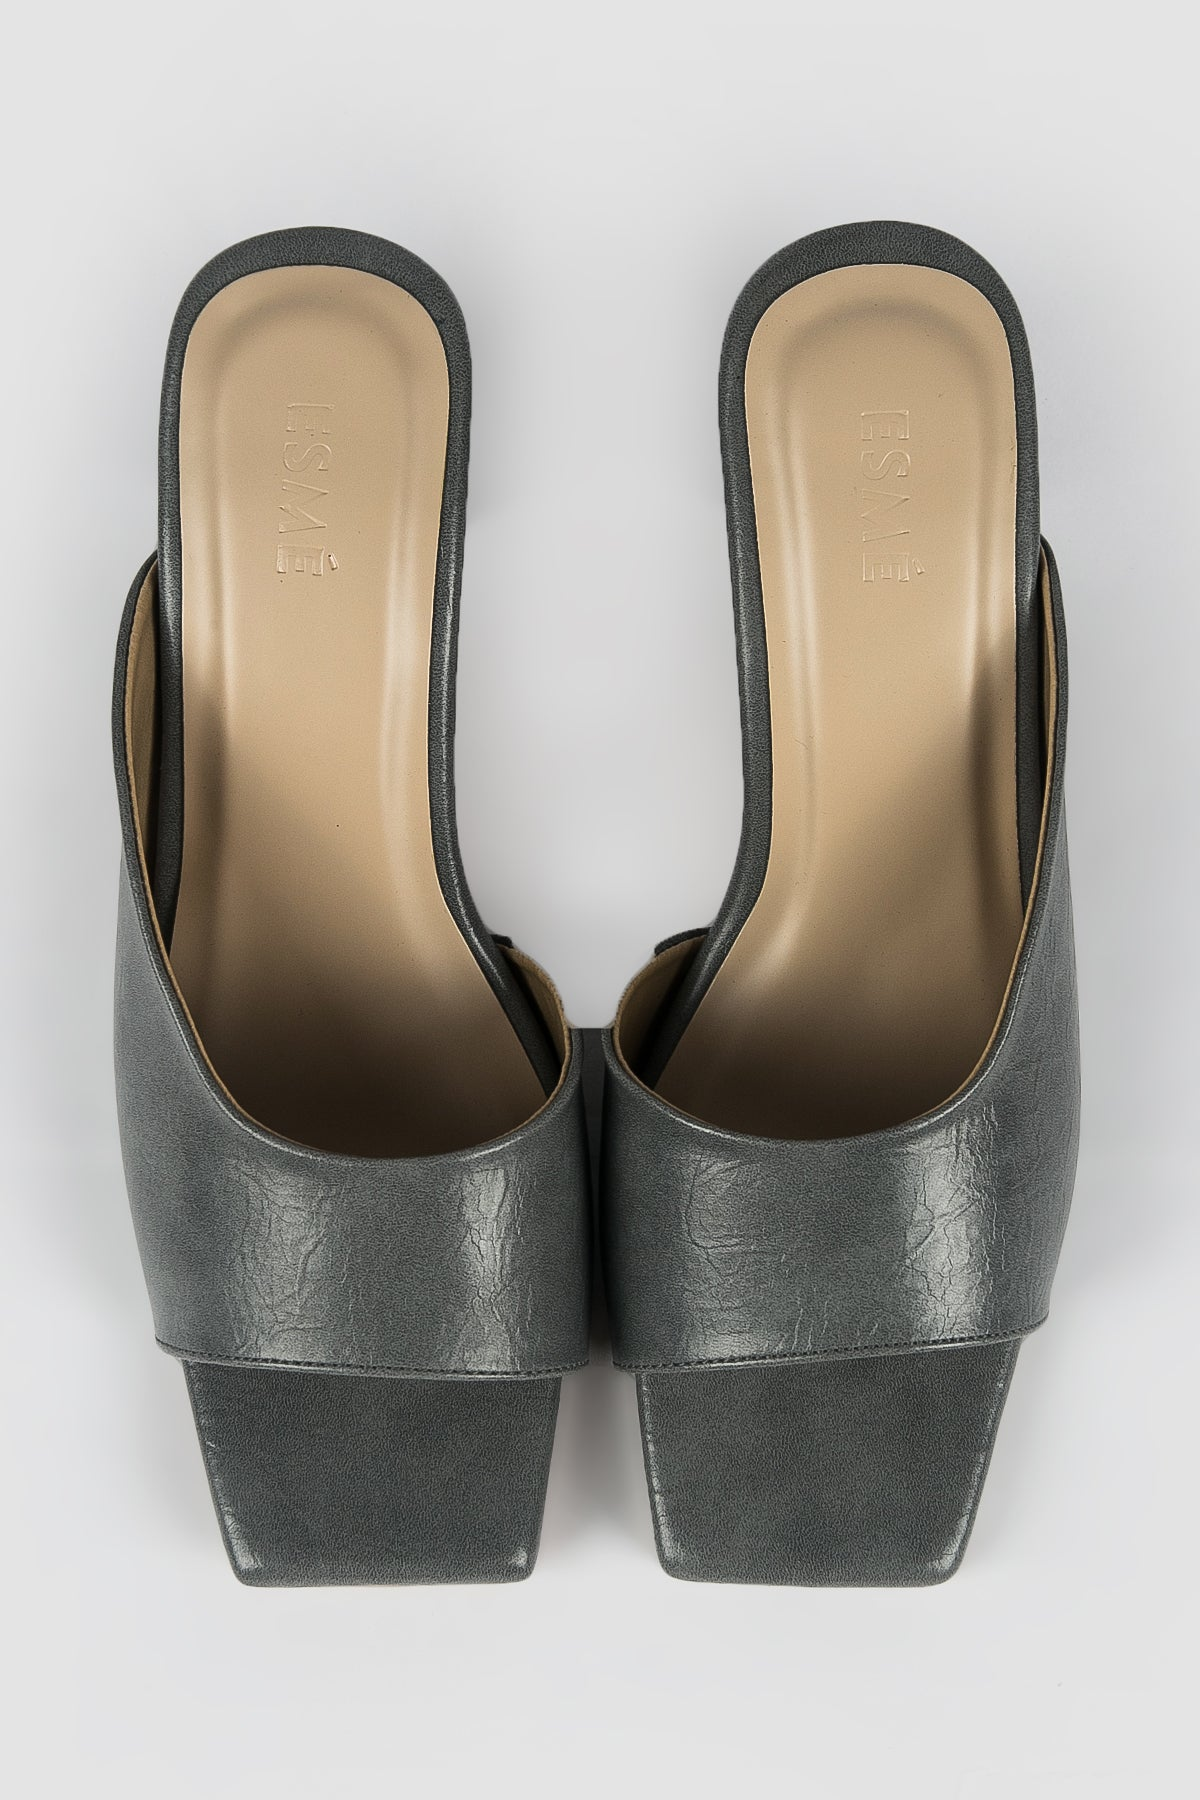 Esmé Joanne Shoes in Grey